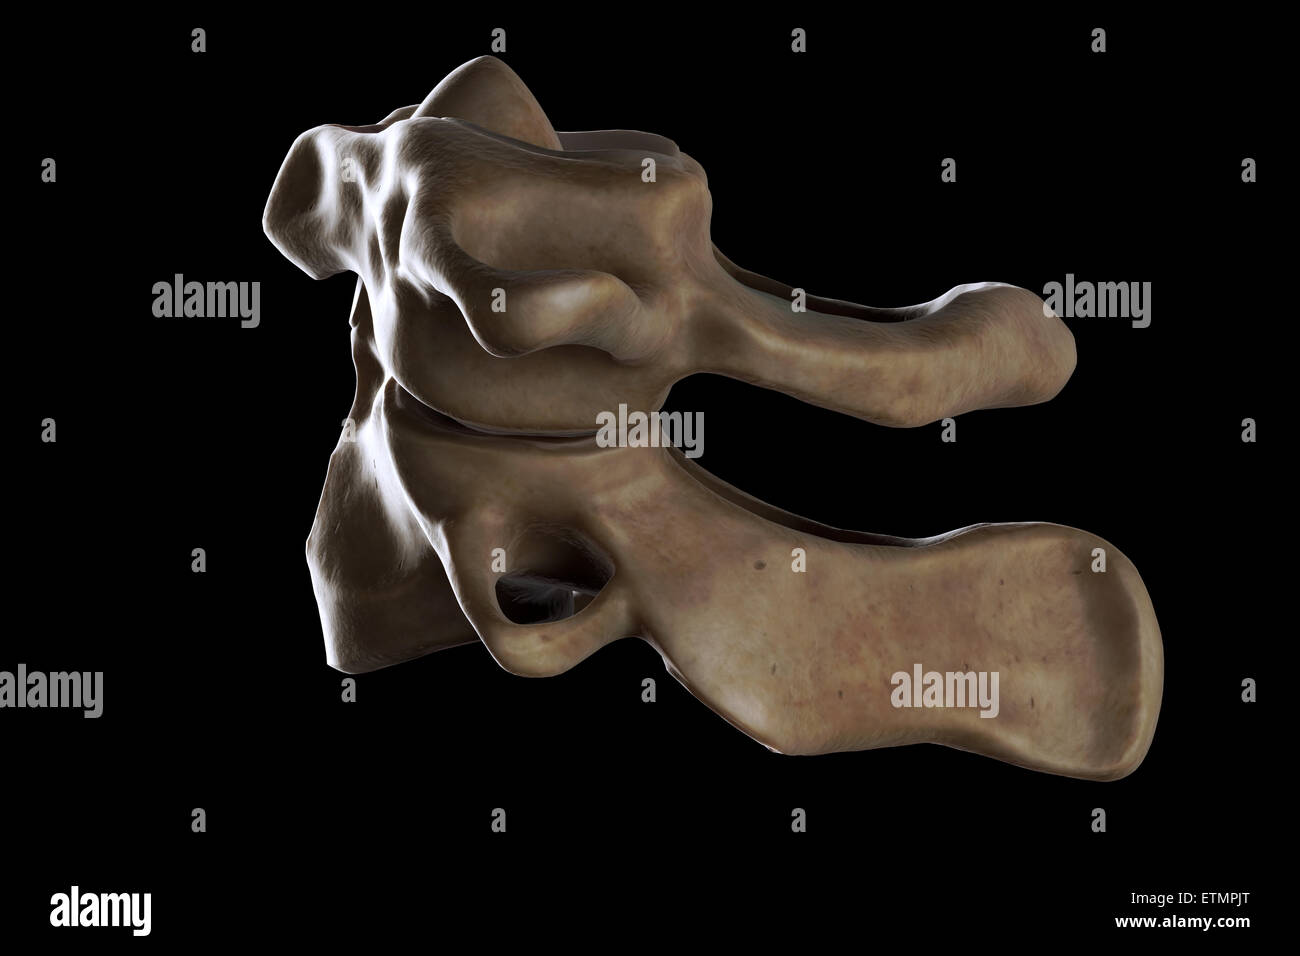 Illustration showing the atlas and axis vertebrae of the neck. - Stock Image